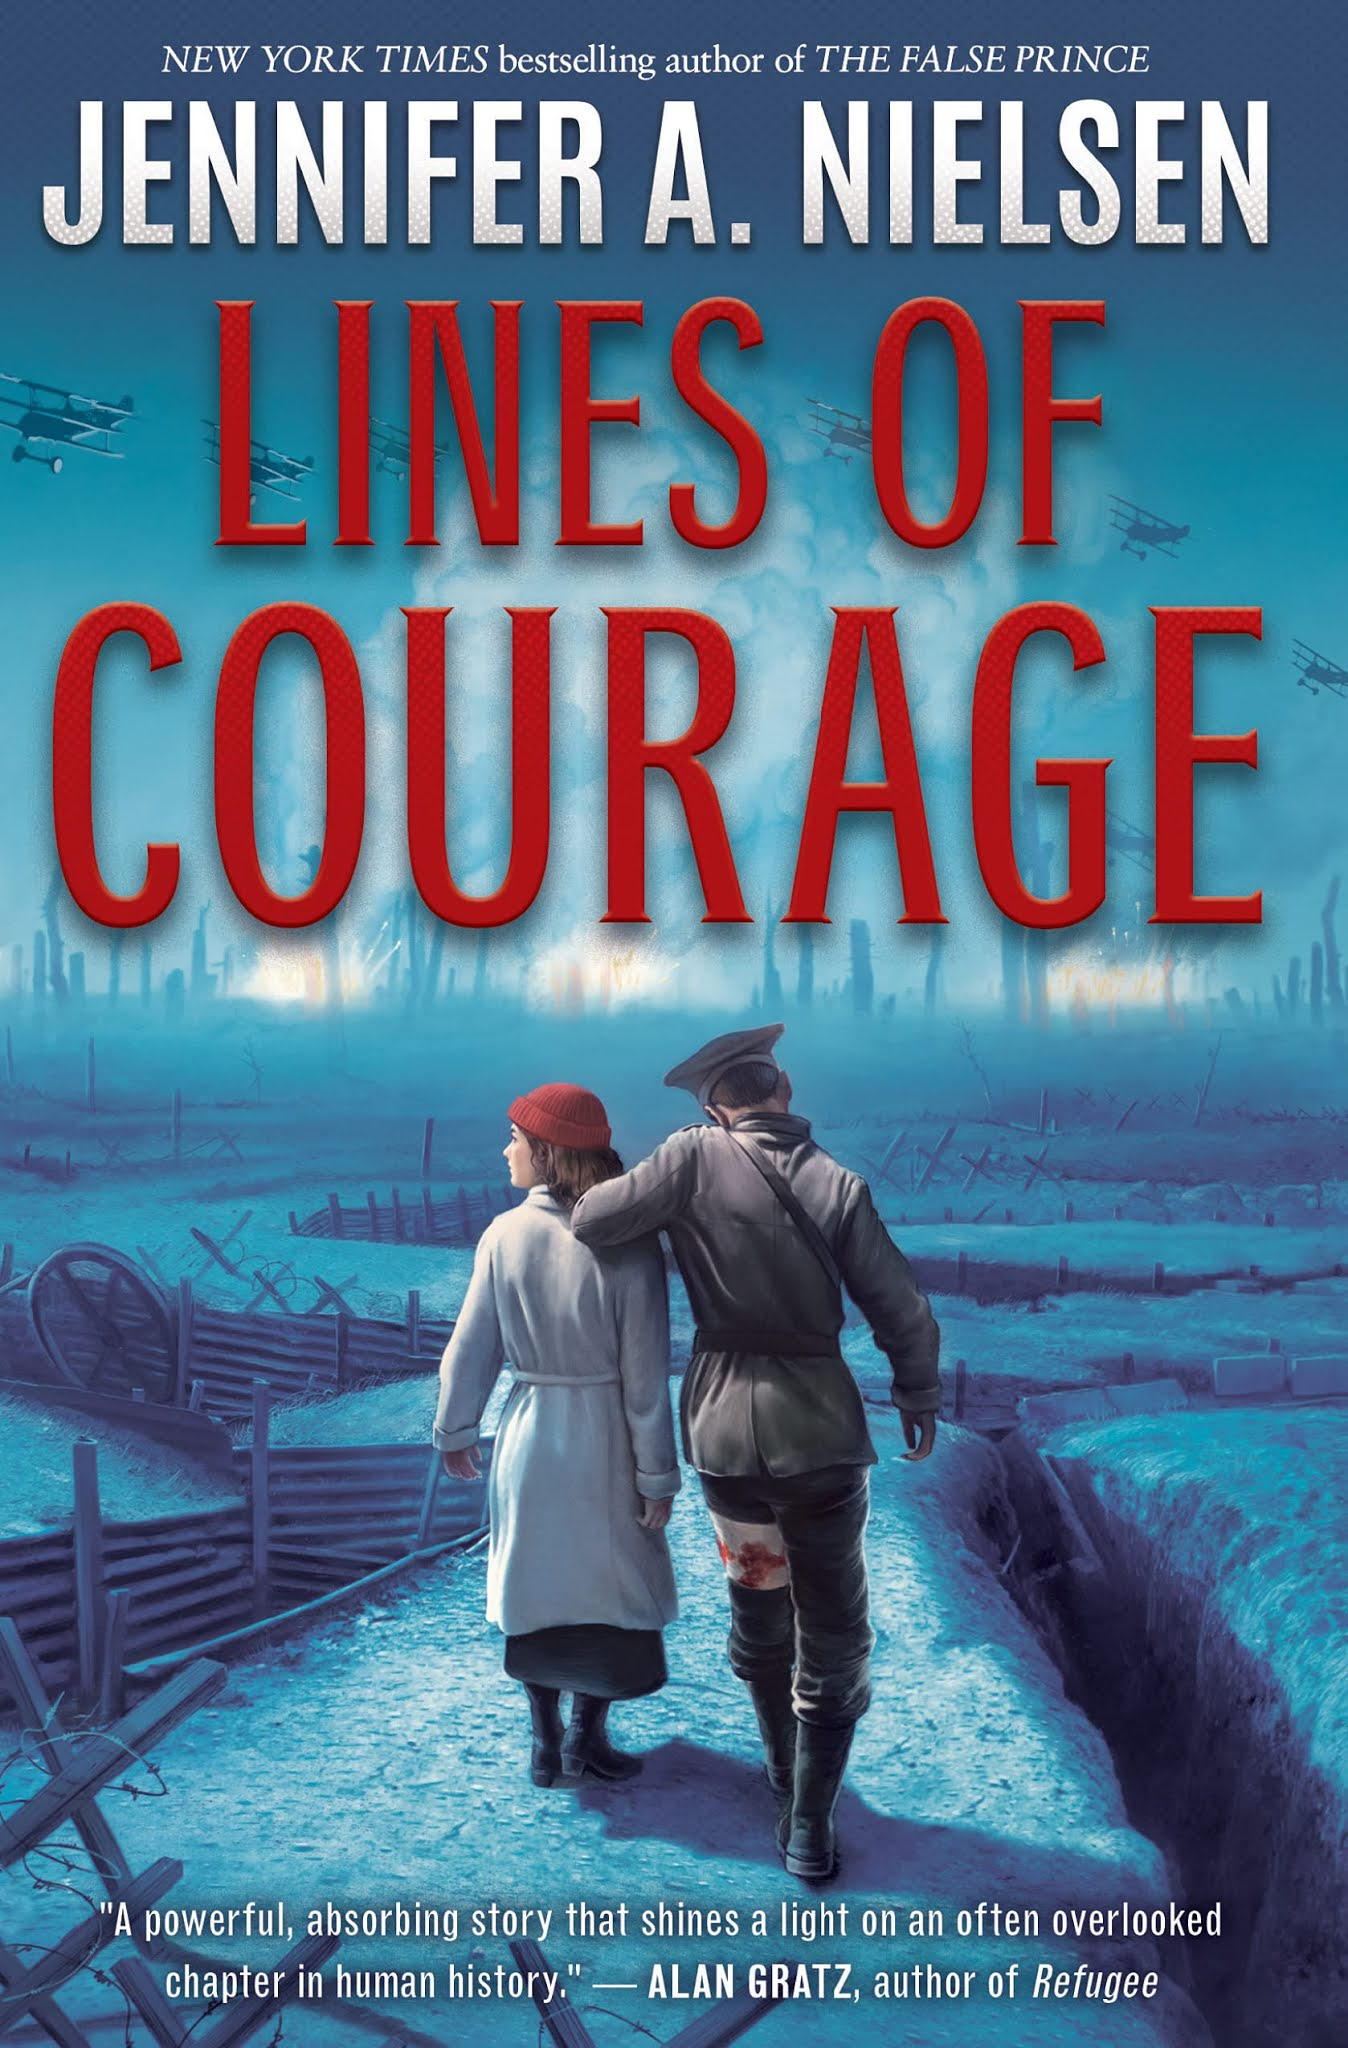 Lines of Courage by Jennifer A. Nielsen